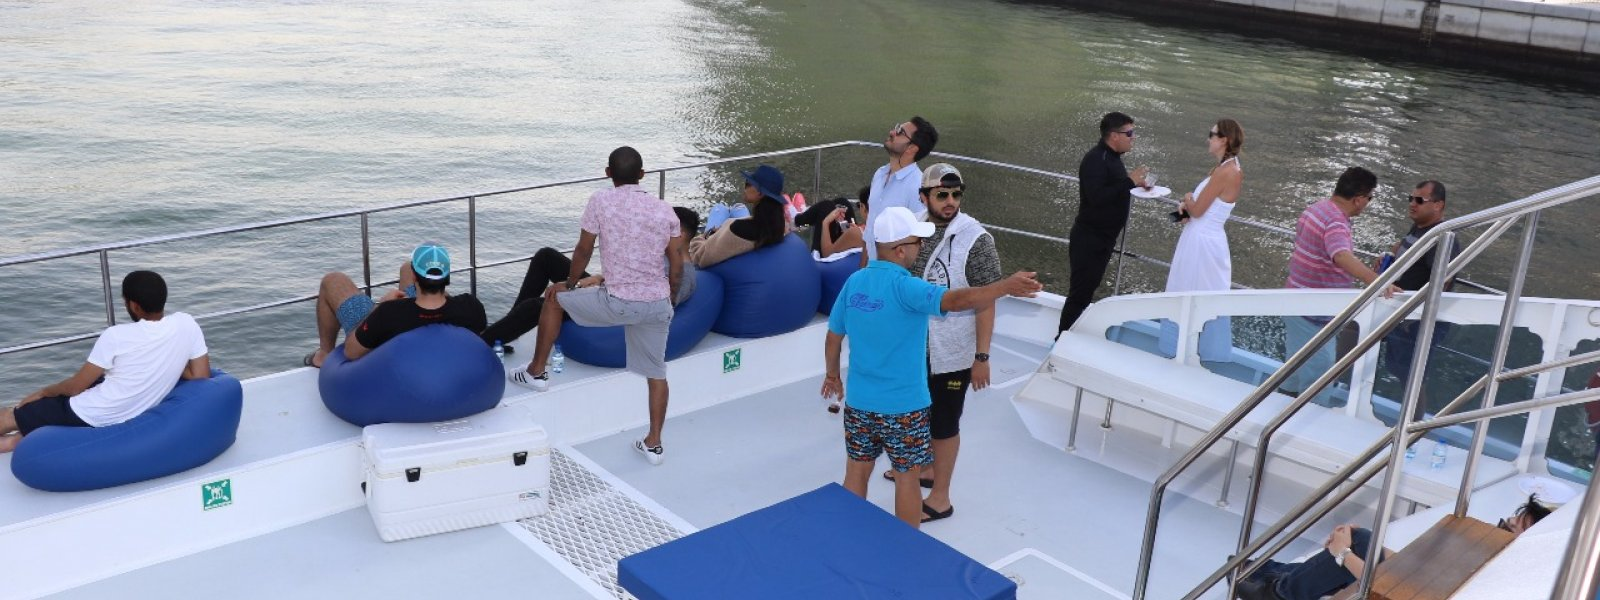 cozmo catamaran yacht enjoy water cruise with family